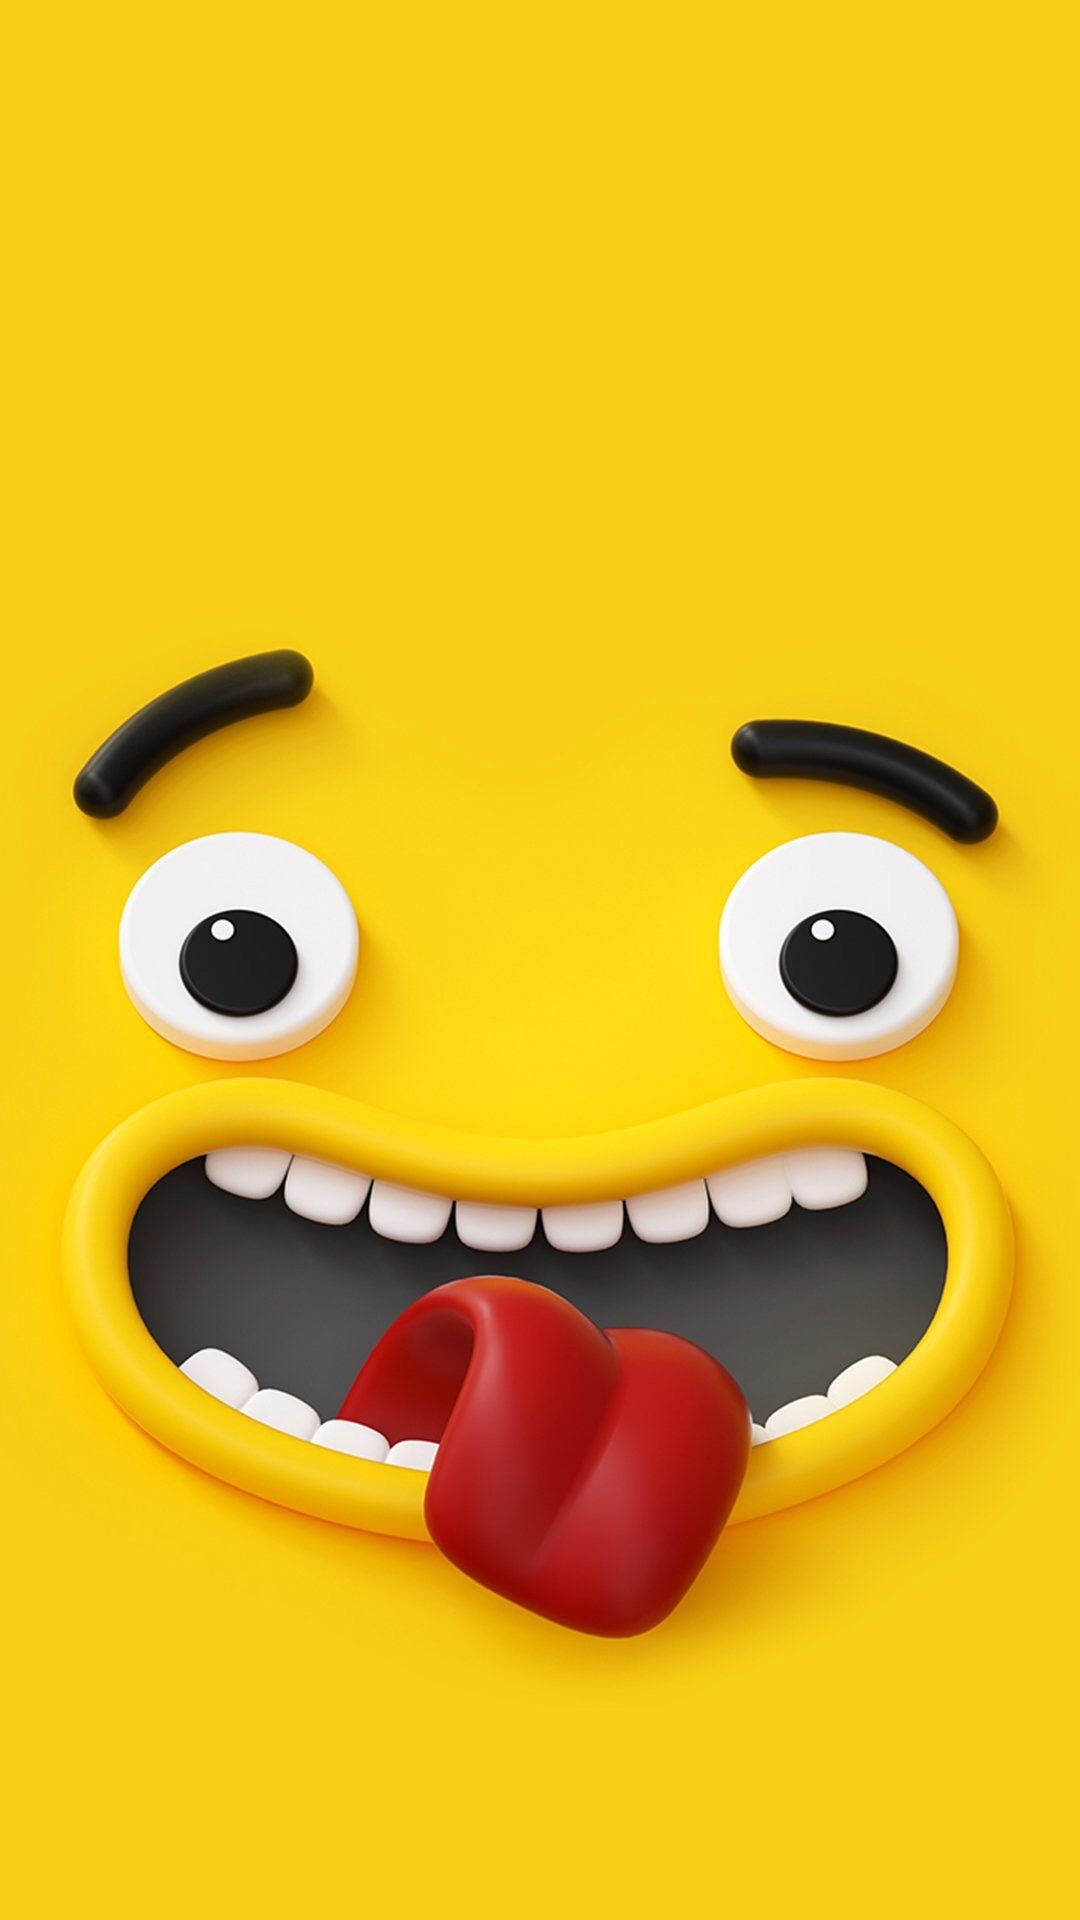 Funny Emoji Wallpapers 77 Images